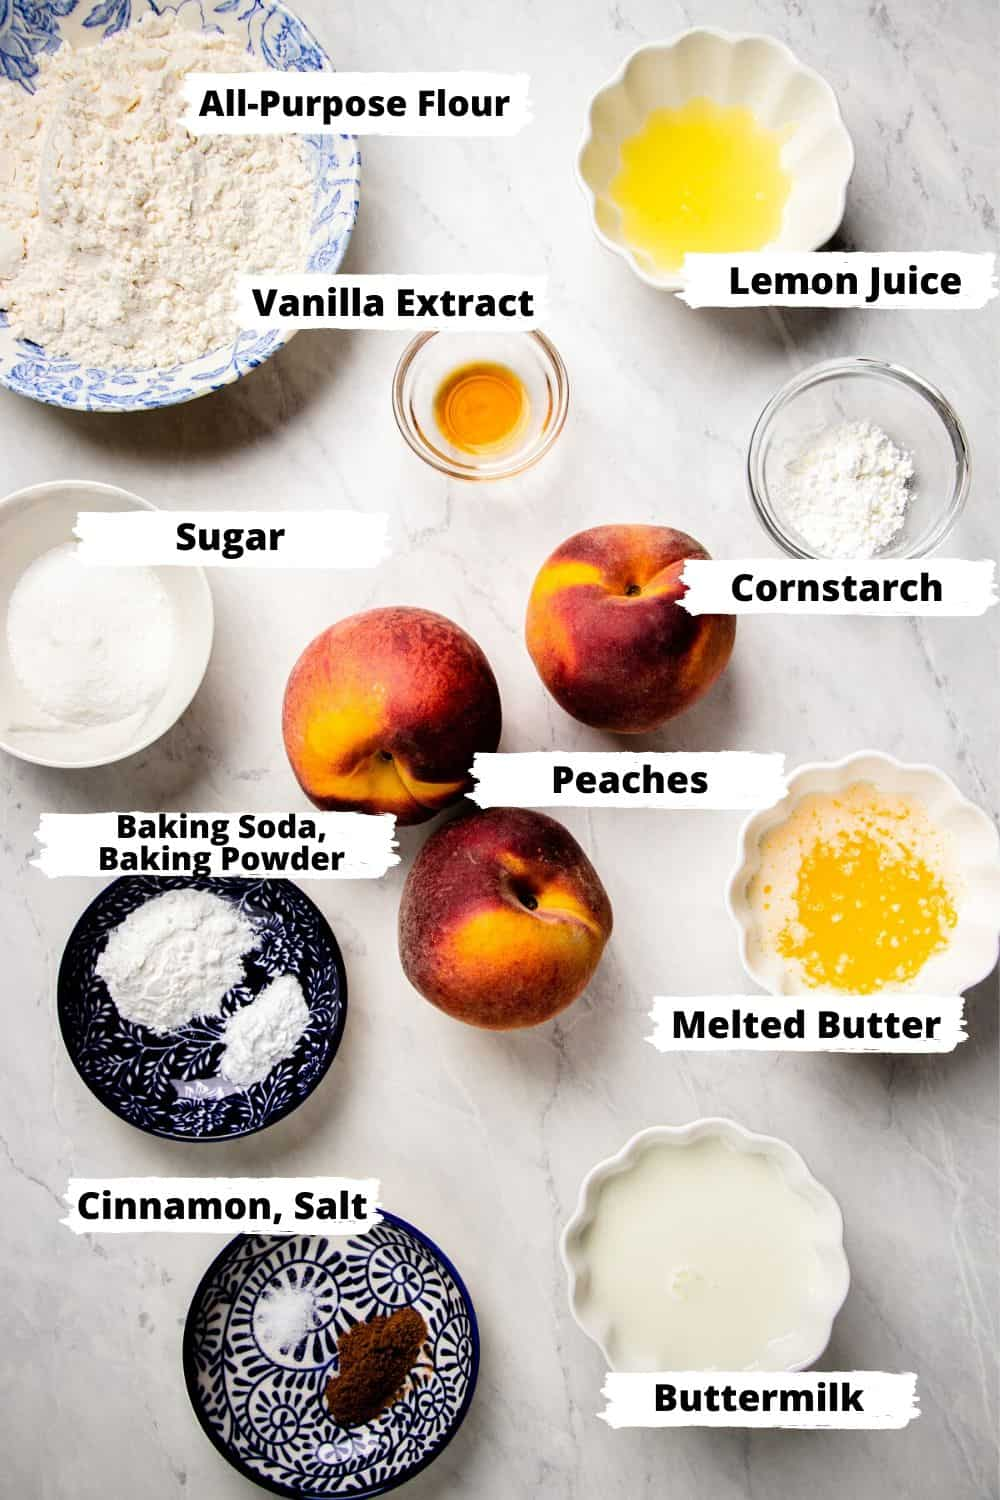 Ingredients for Peach Cobbler.